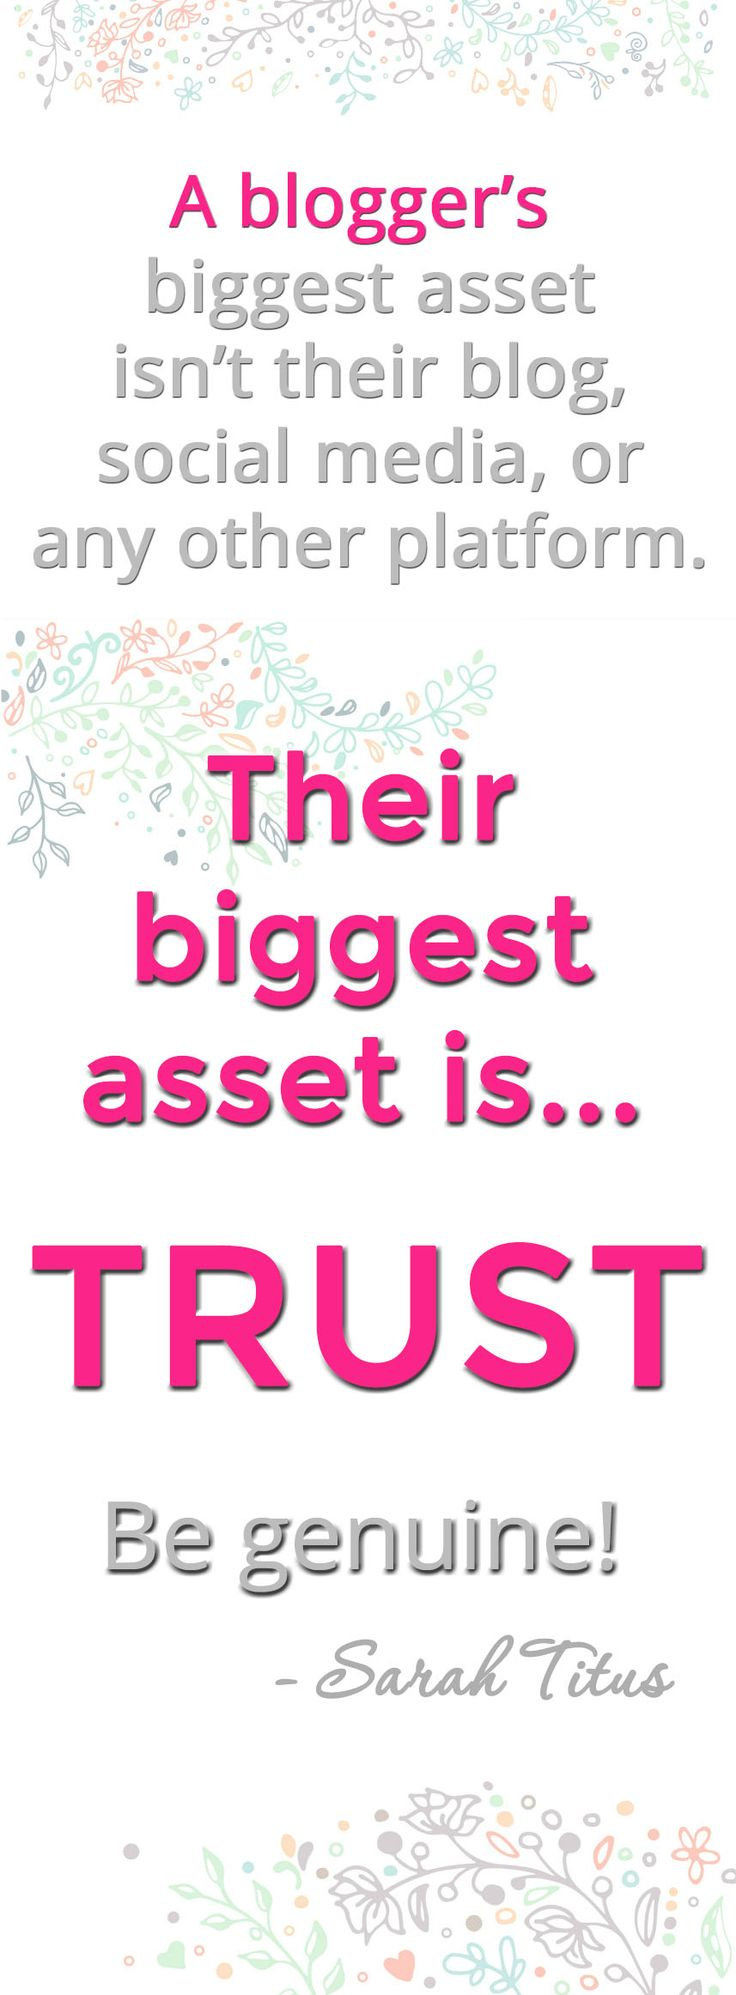 A blogger's biggest asset is trust!